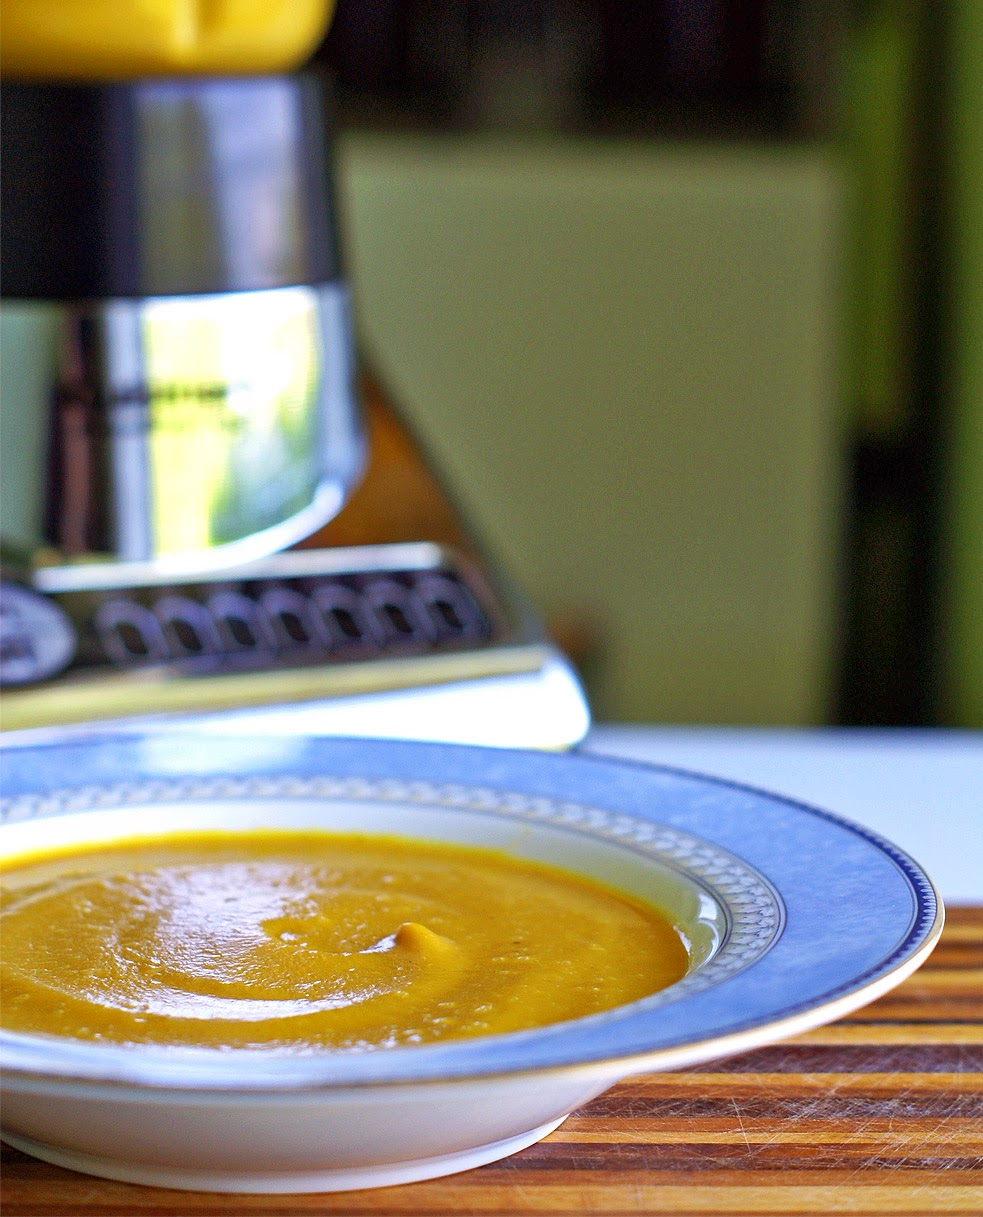 ... pear soup squash and pear soup curried butternut squash and pear soup